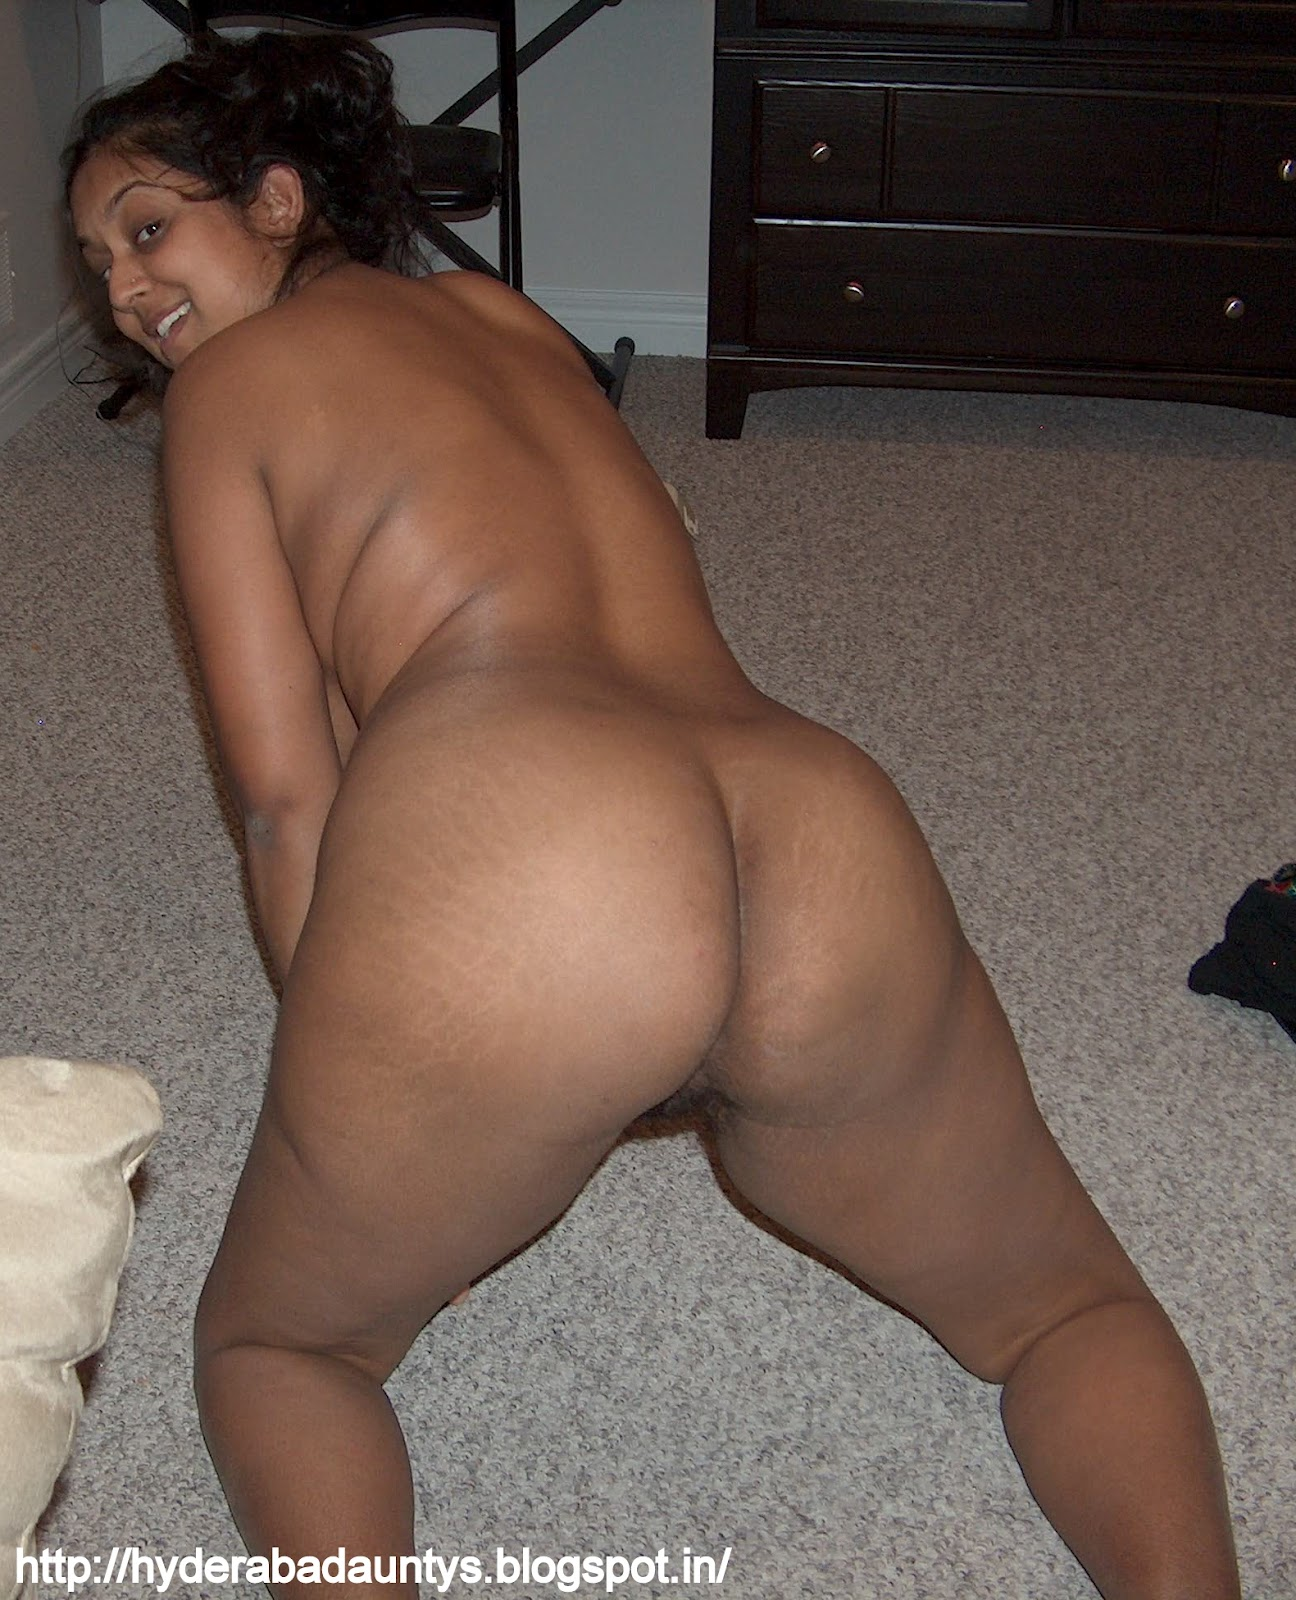 Desi monster butt girl softcore pictures